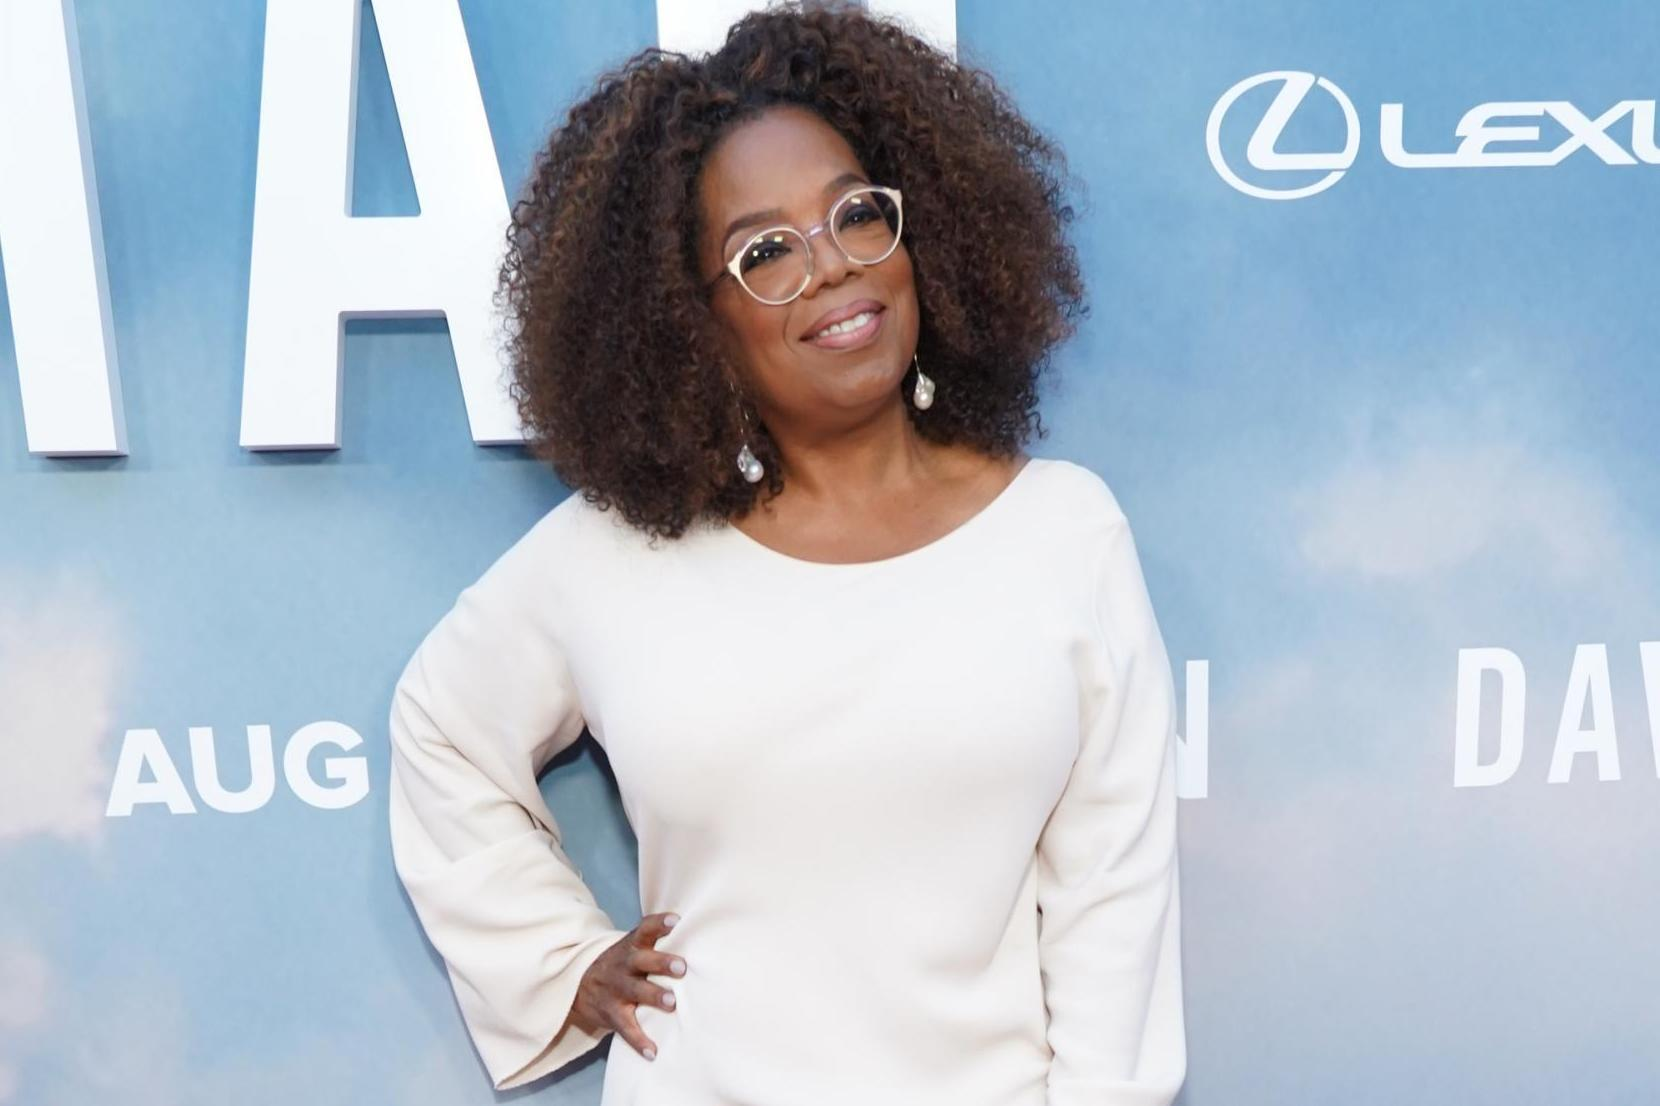 Oprah buys college student new phone after joking about his broken one